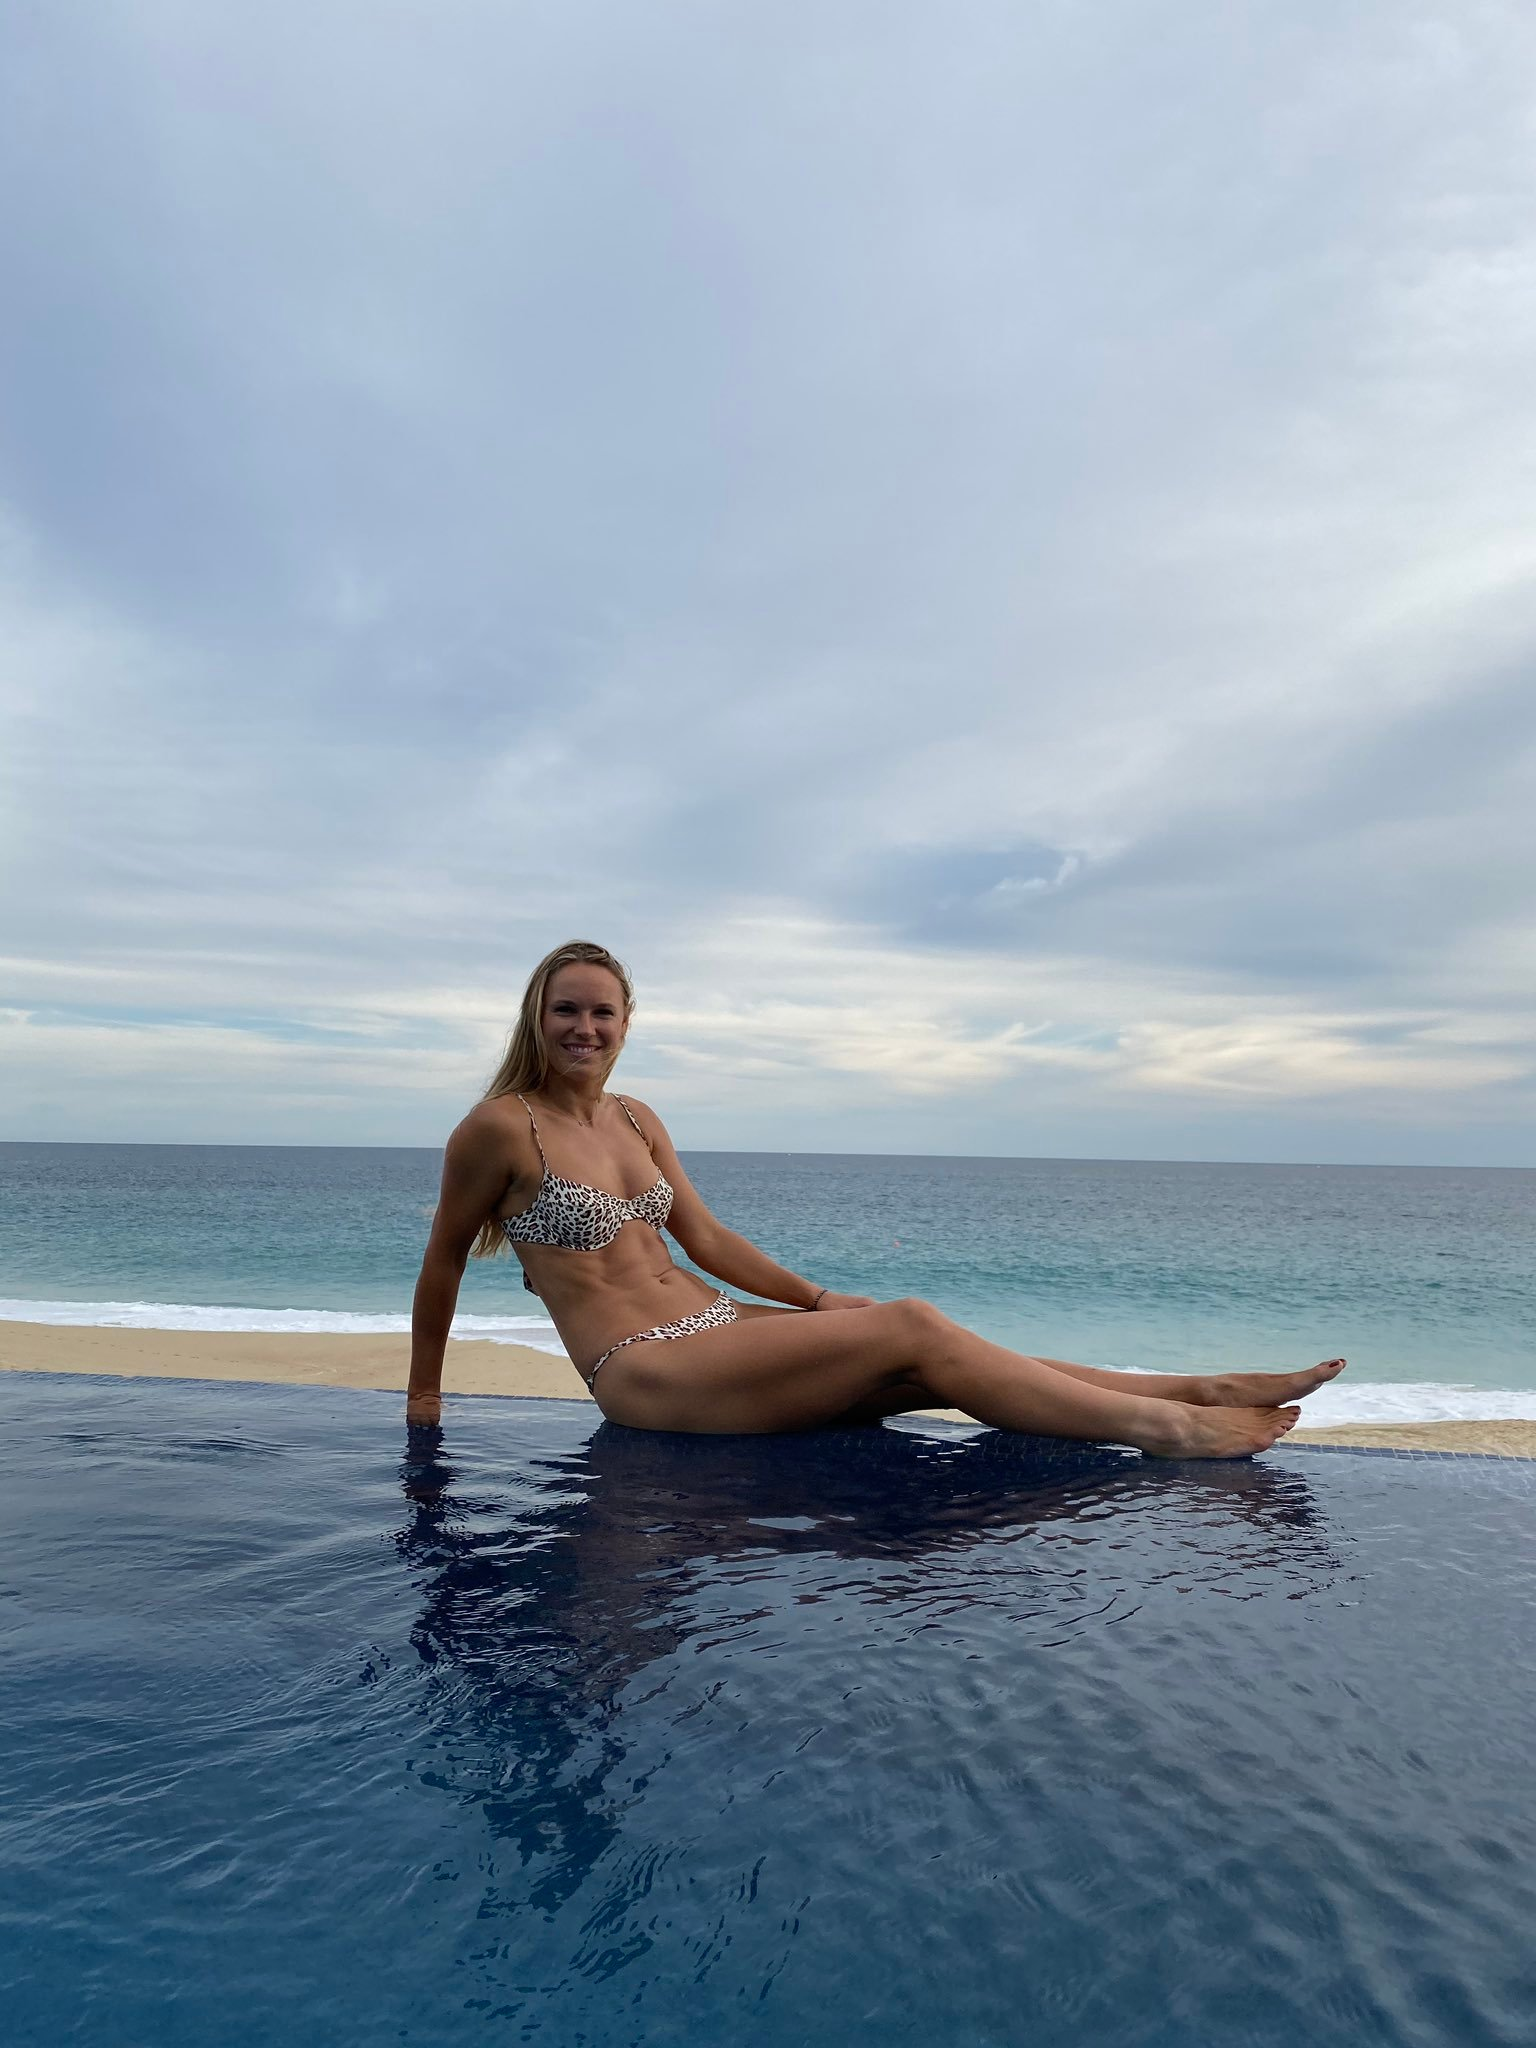 Caroline Wozniacki poses for Sports Illustrated photoshoot shortly after announcing retirement from tennis